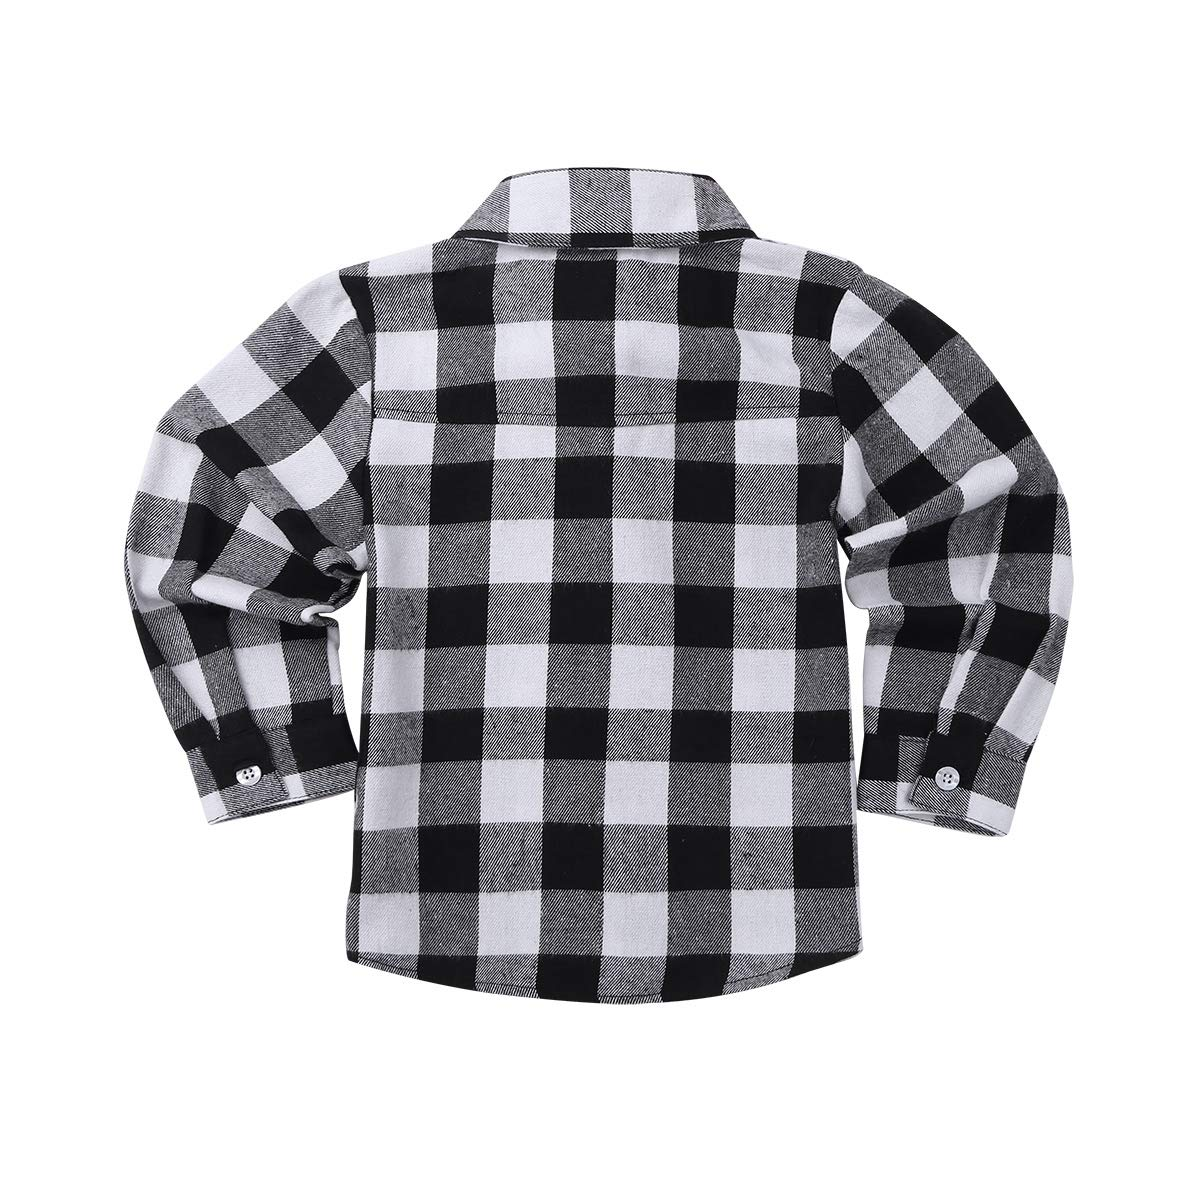 iEFiEL Kids Boys Girls Long Sleeve Button Down Plaid Cotton Shirt Baby Casual Tops Formal Suit